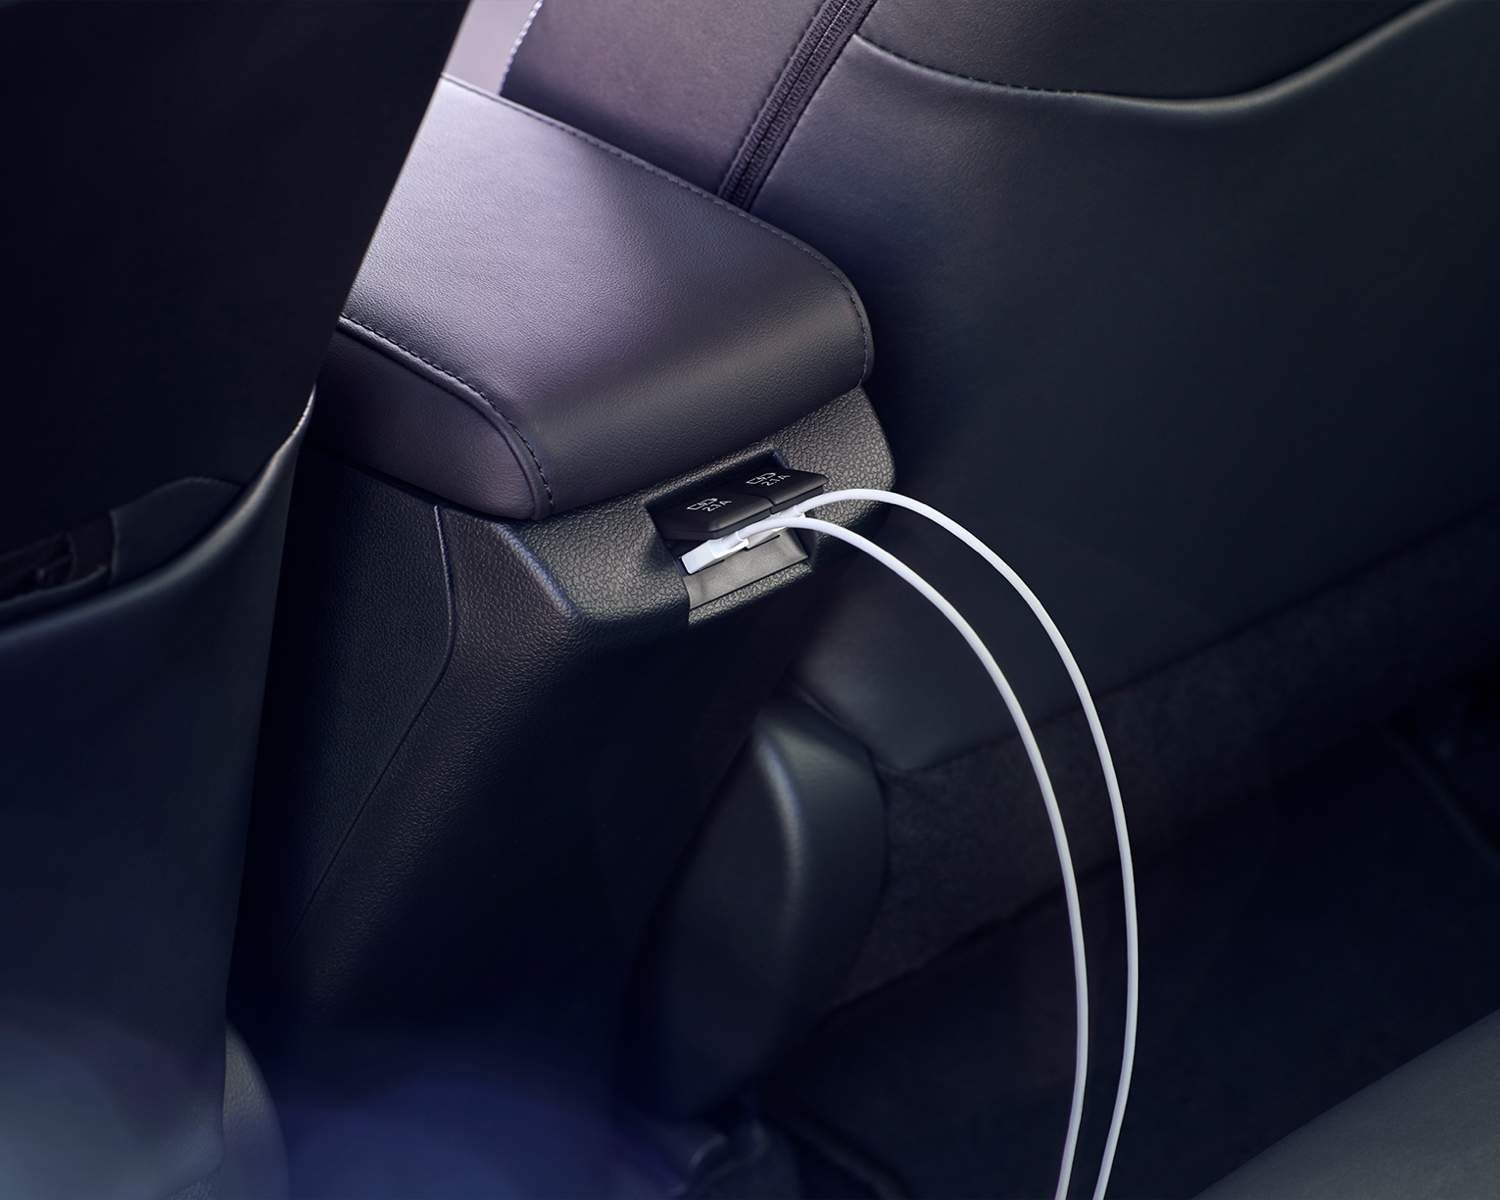 Prius Prime Technology with Rear USB Port